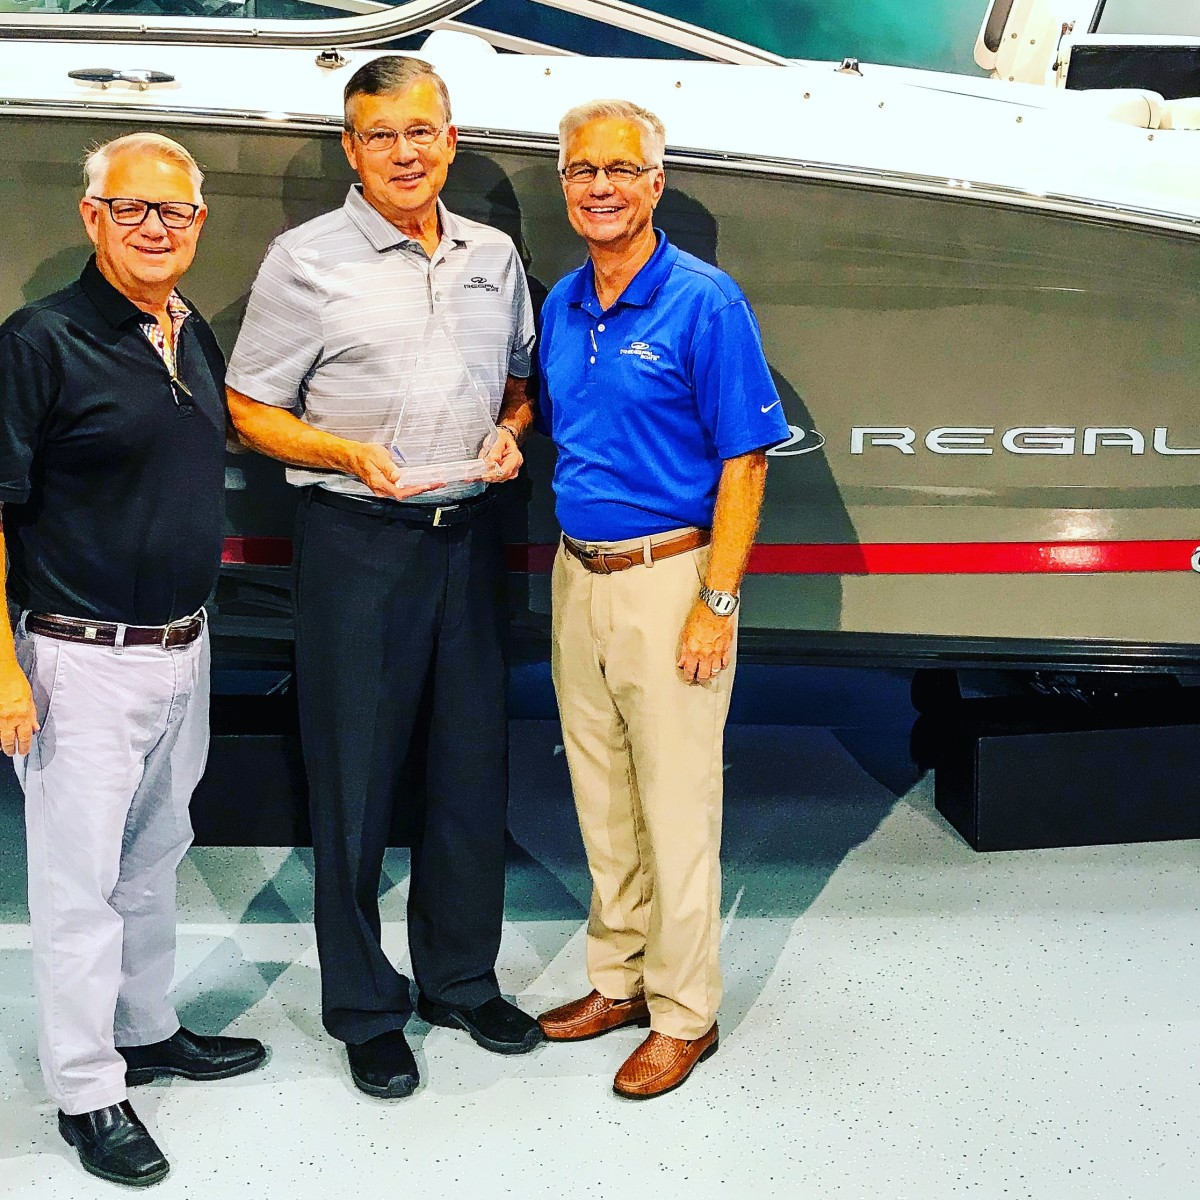 Regal Boats VP Tim Kuck (left) and CEO Duane Kuck (right) present Jim Krueger (center) with a special commemorative crystal award upon his retirement for outstanding leadership.